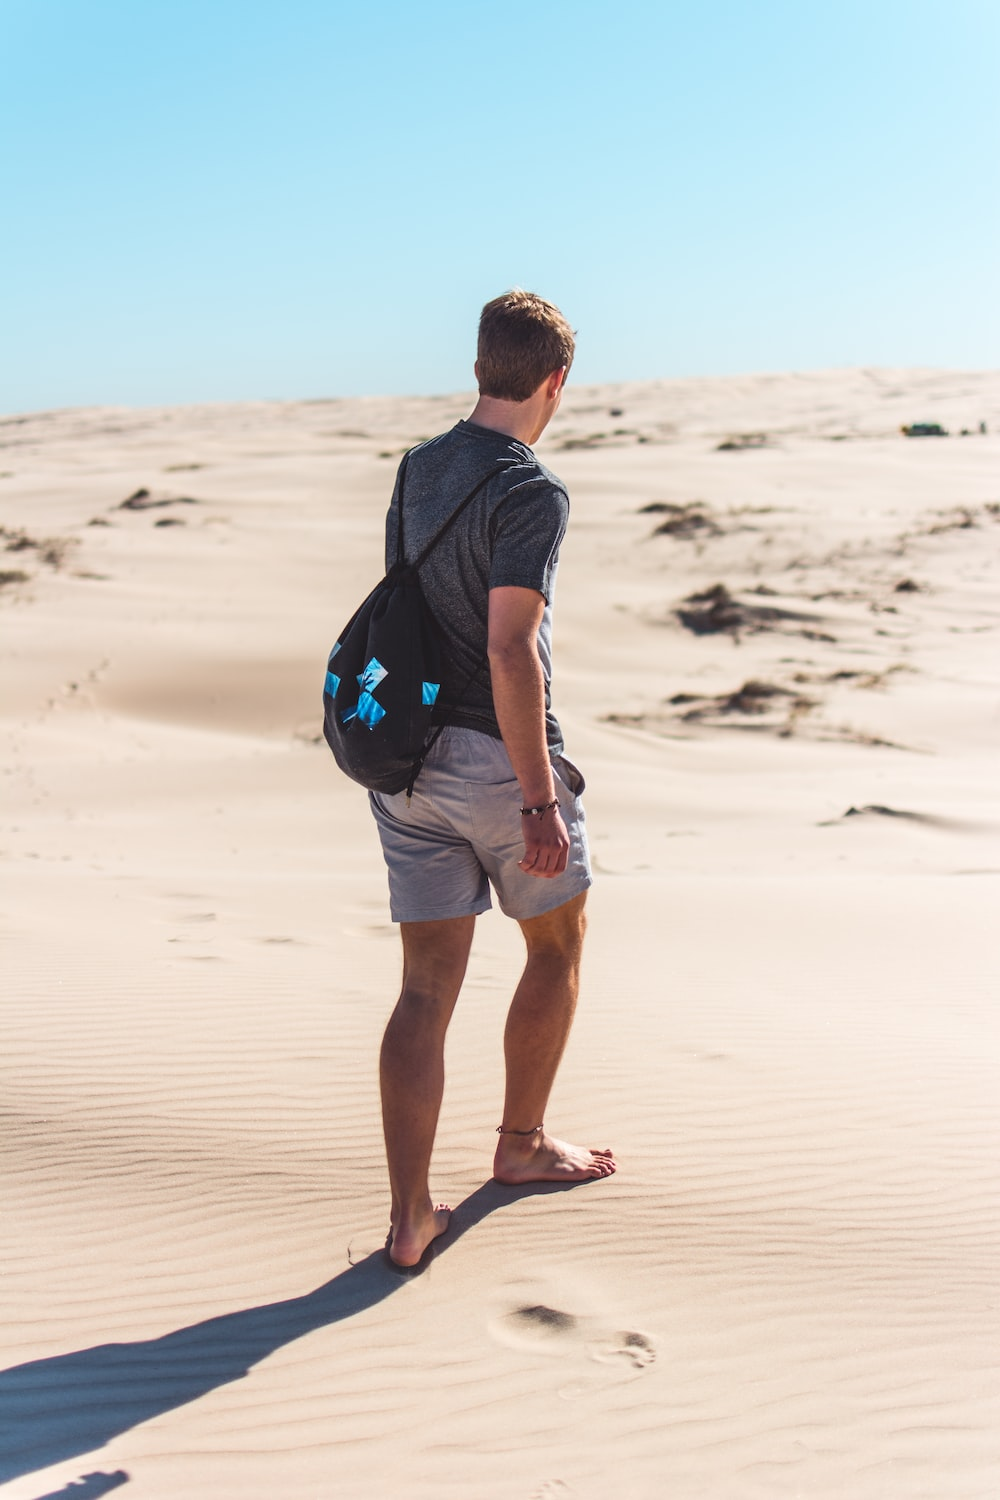 man in black long sleeve shirt and blue shorts walking on sand during daytime